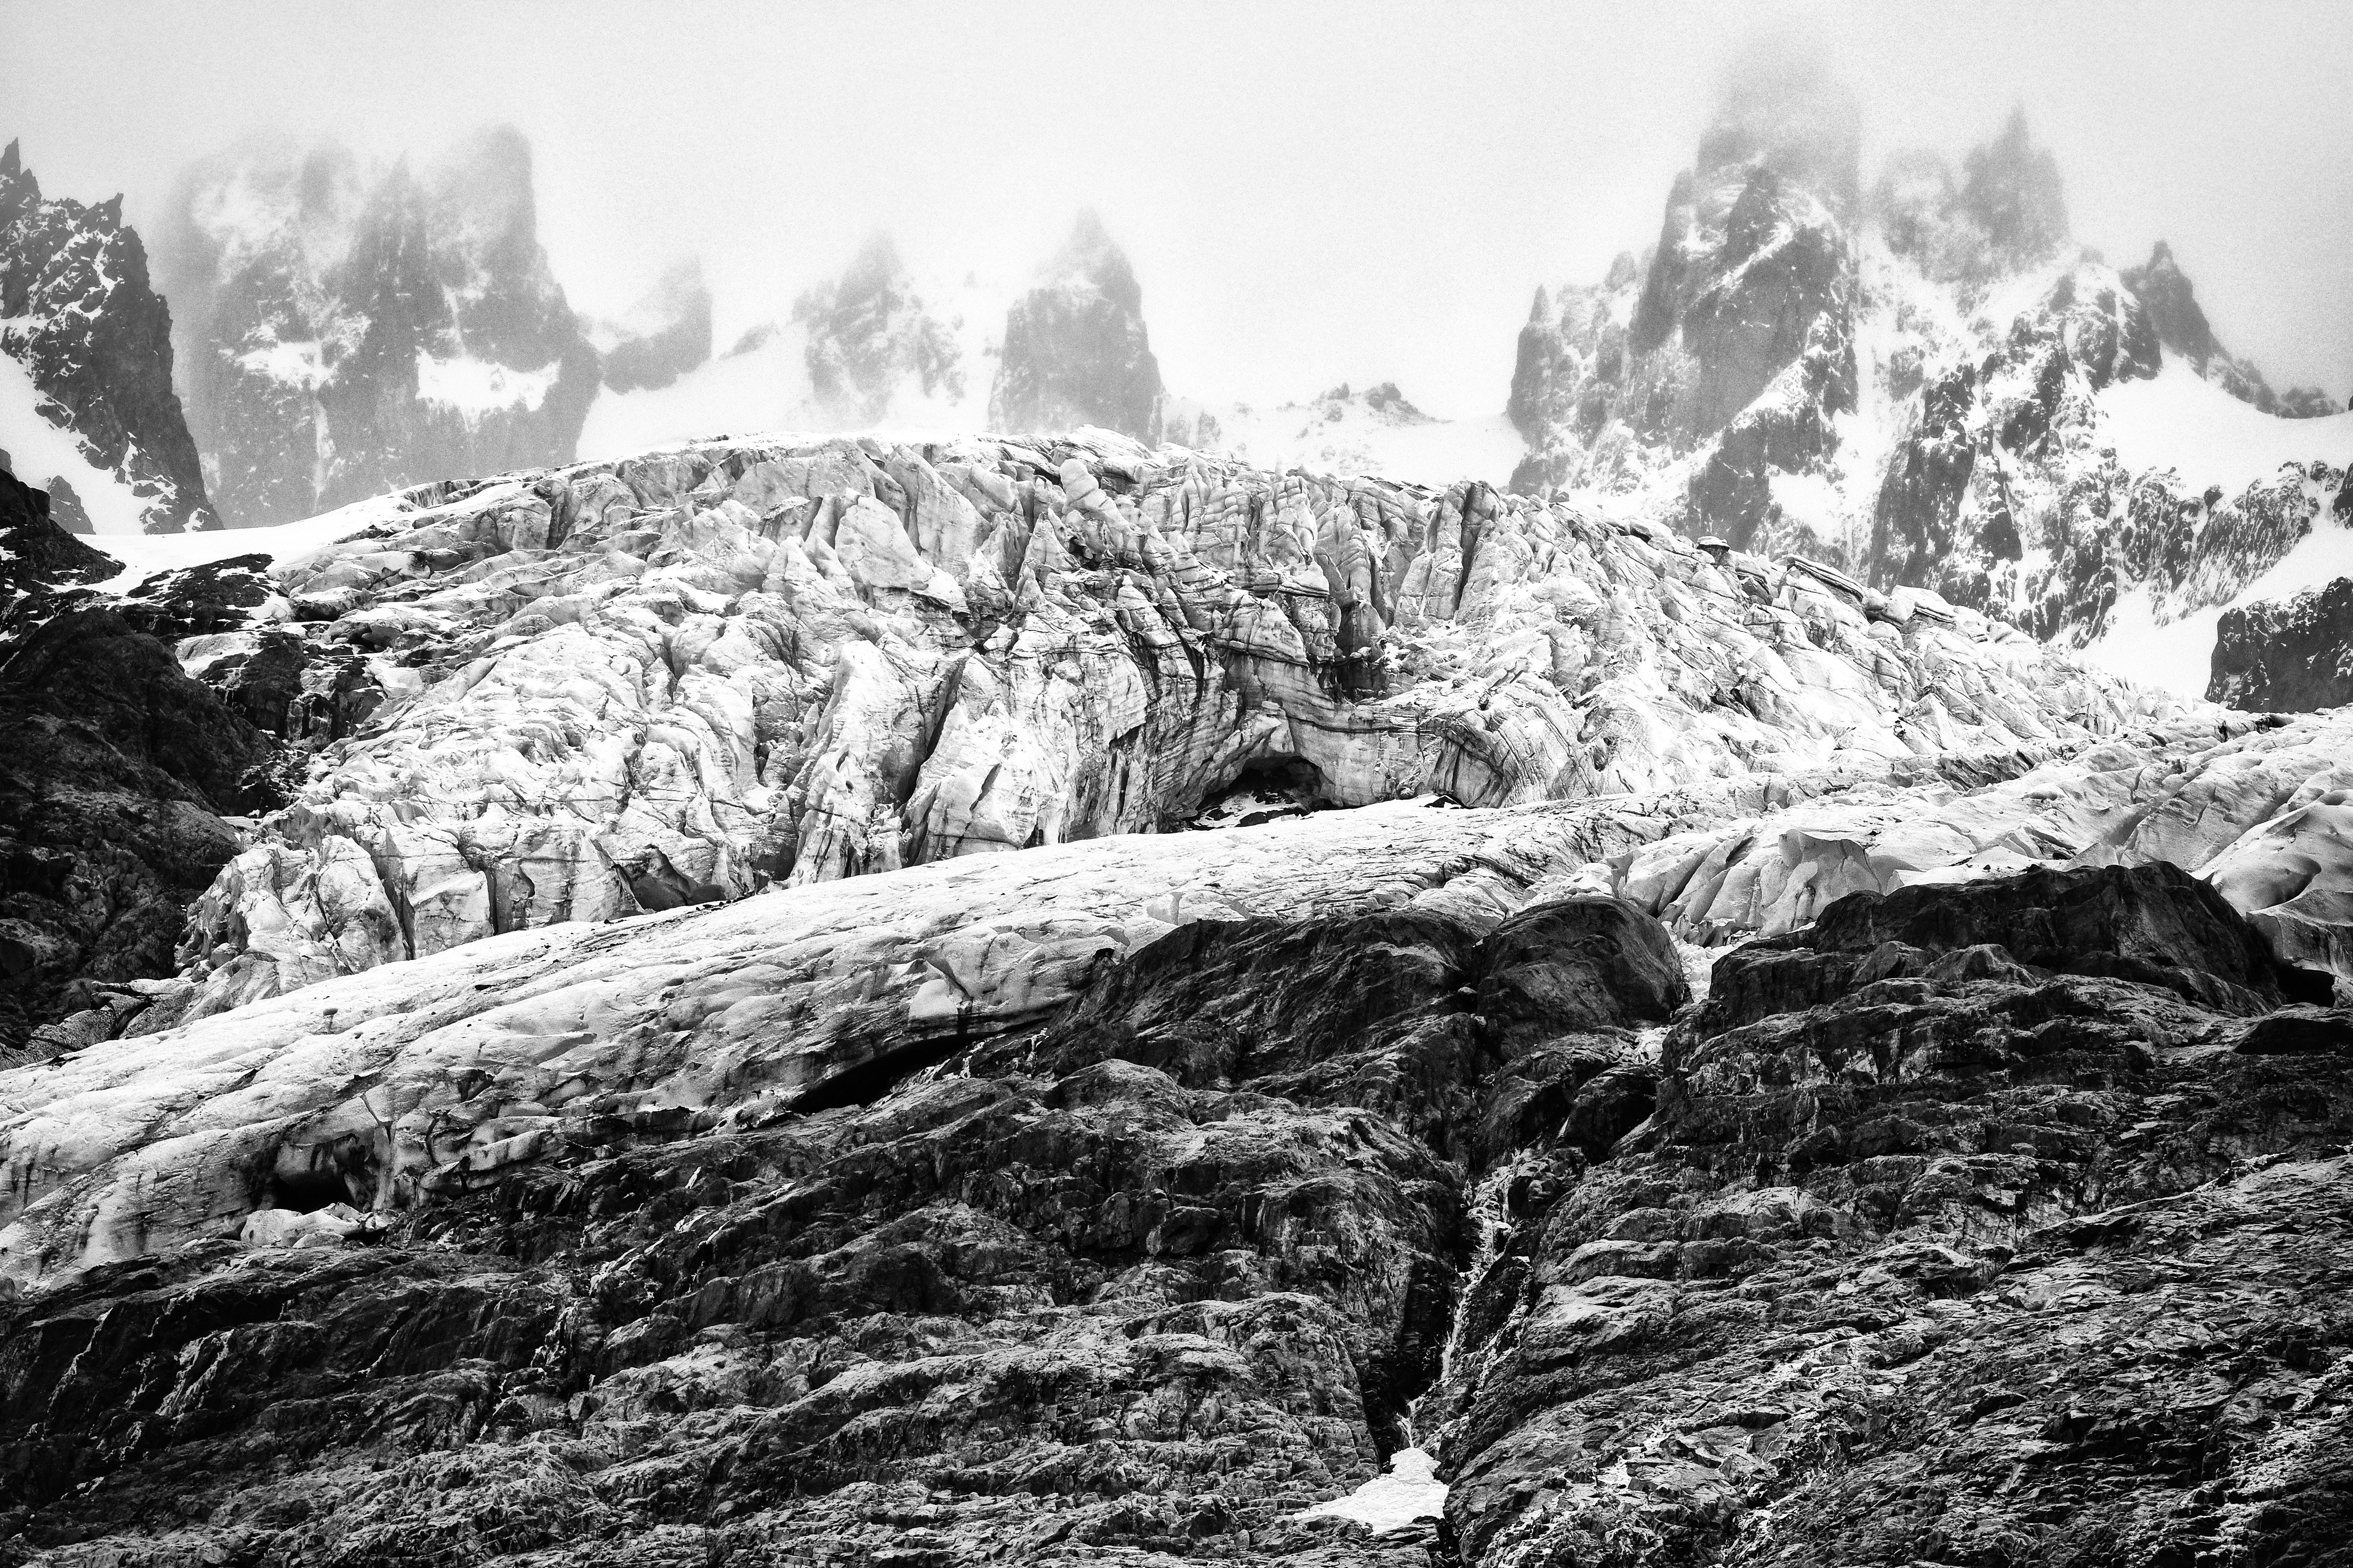 Erick Strange: 'glacier', 2018 Black and White Photograph, Abstract Figurative. Artist Description: Photo taken in Southern Chile, Cerro Castillo - Patagonia ...